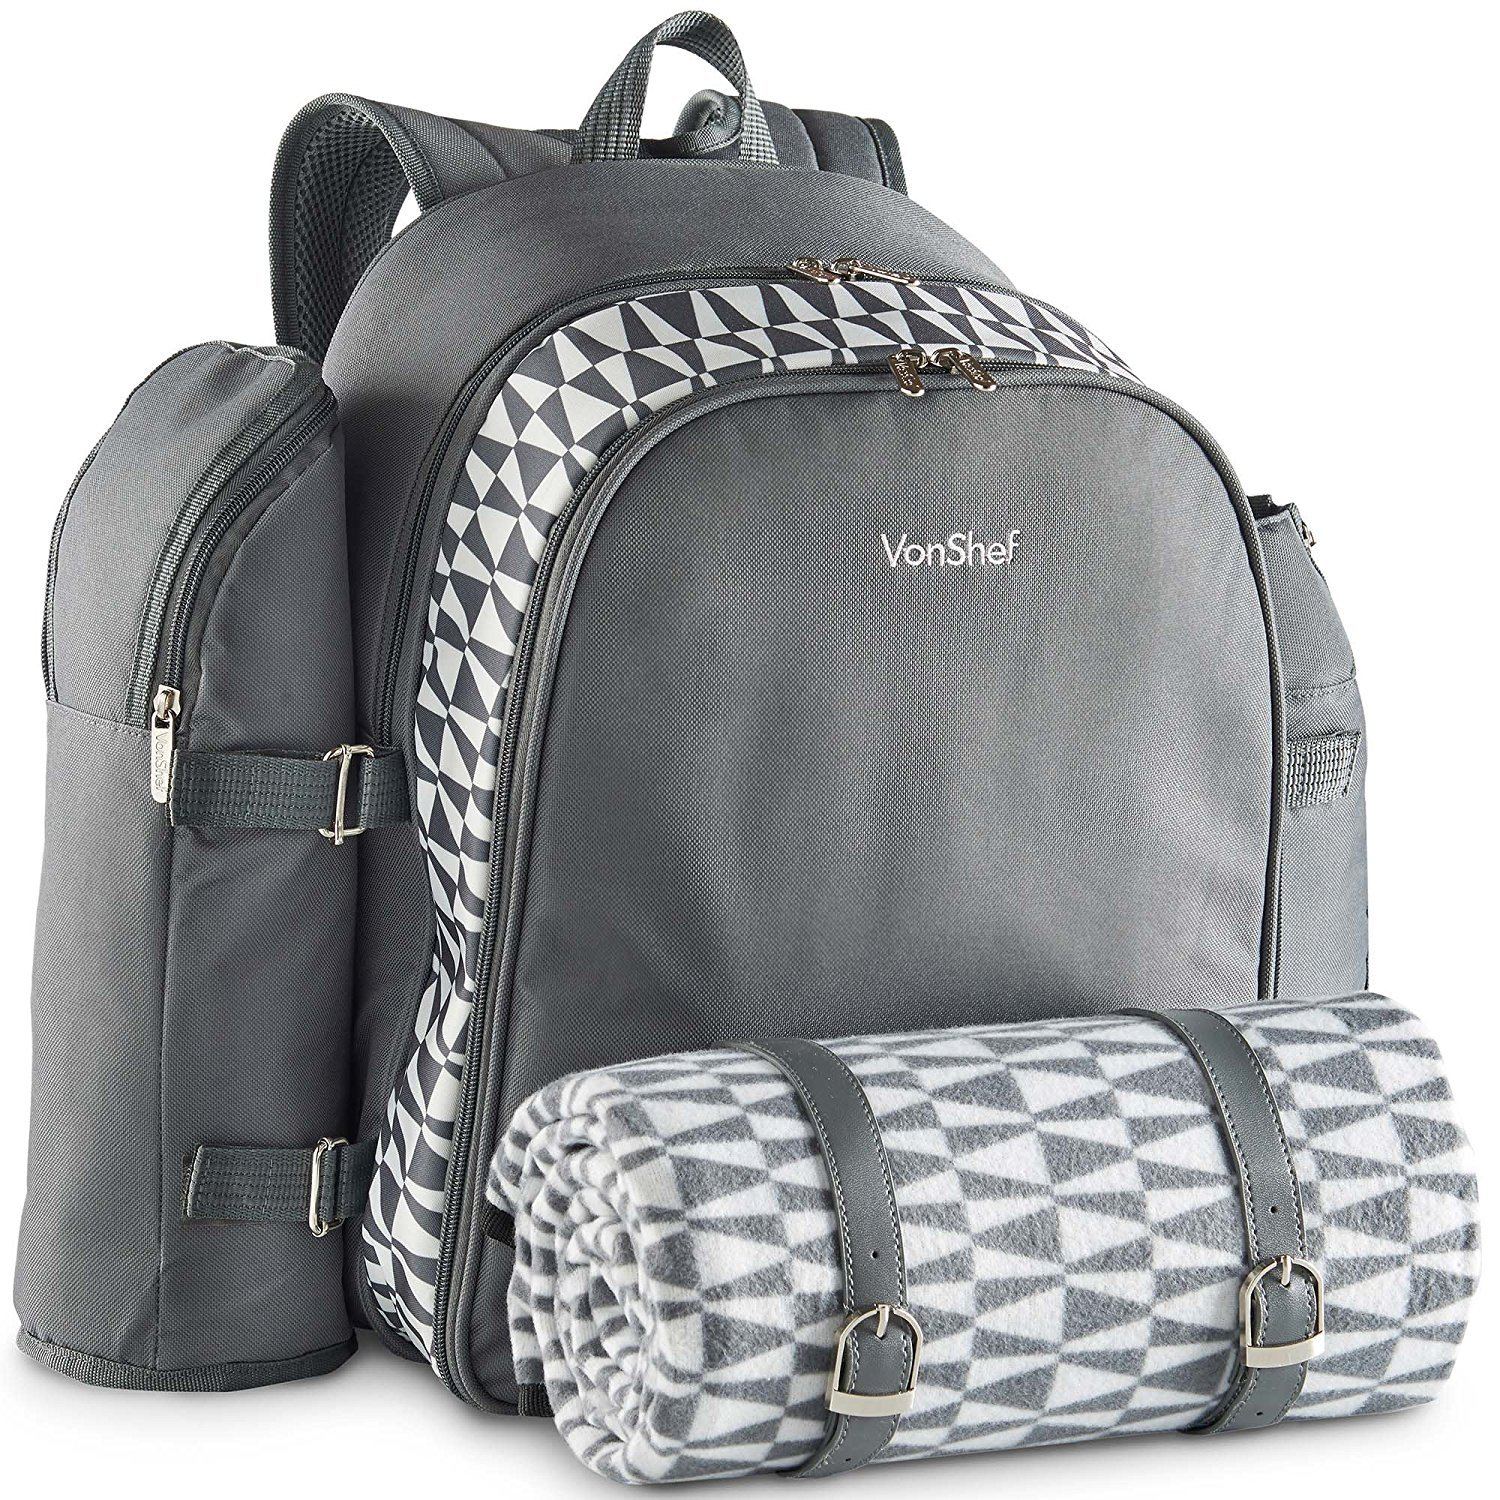 VonShef 4 Person Outdoor Picnic Backpack Bag Set With Blanket – Includes 29 Piece Dining Set & Insulated Cooler Compartment to Keep Food Chilled for Longer - Gray by VonShef (Image #4)